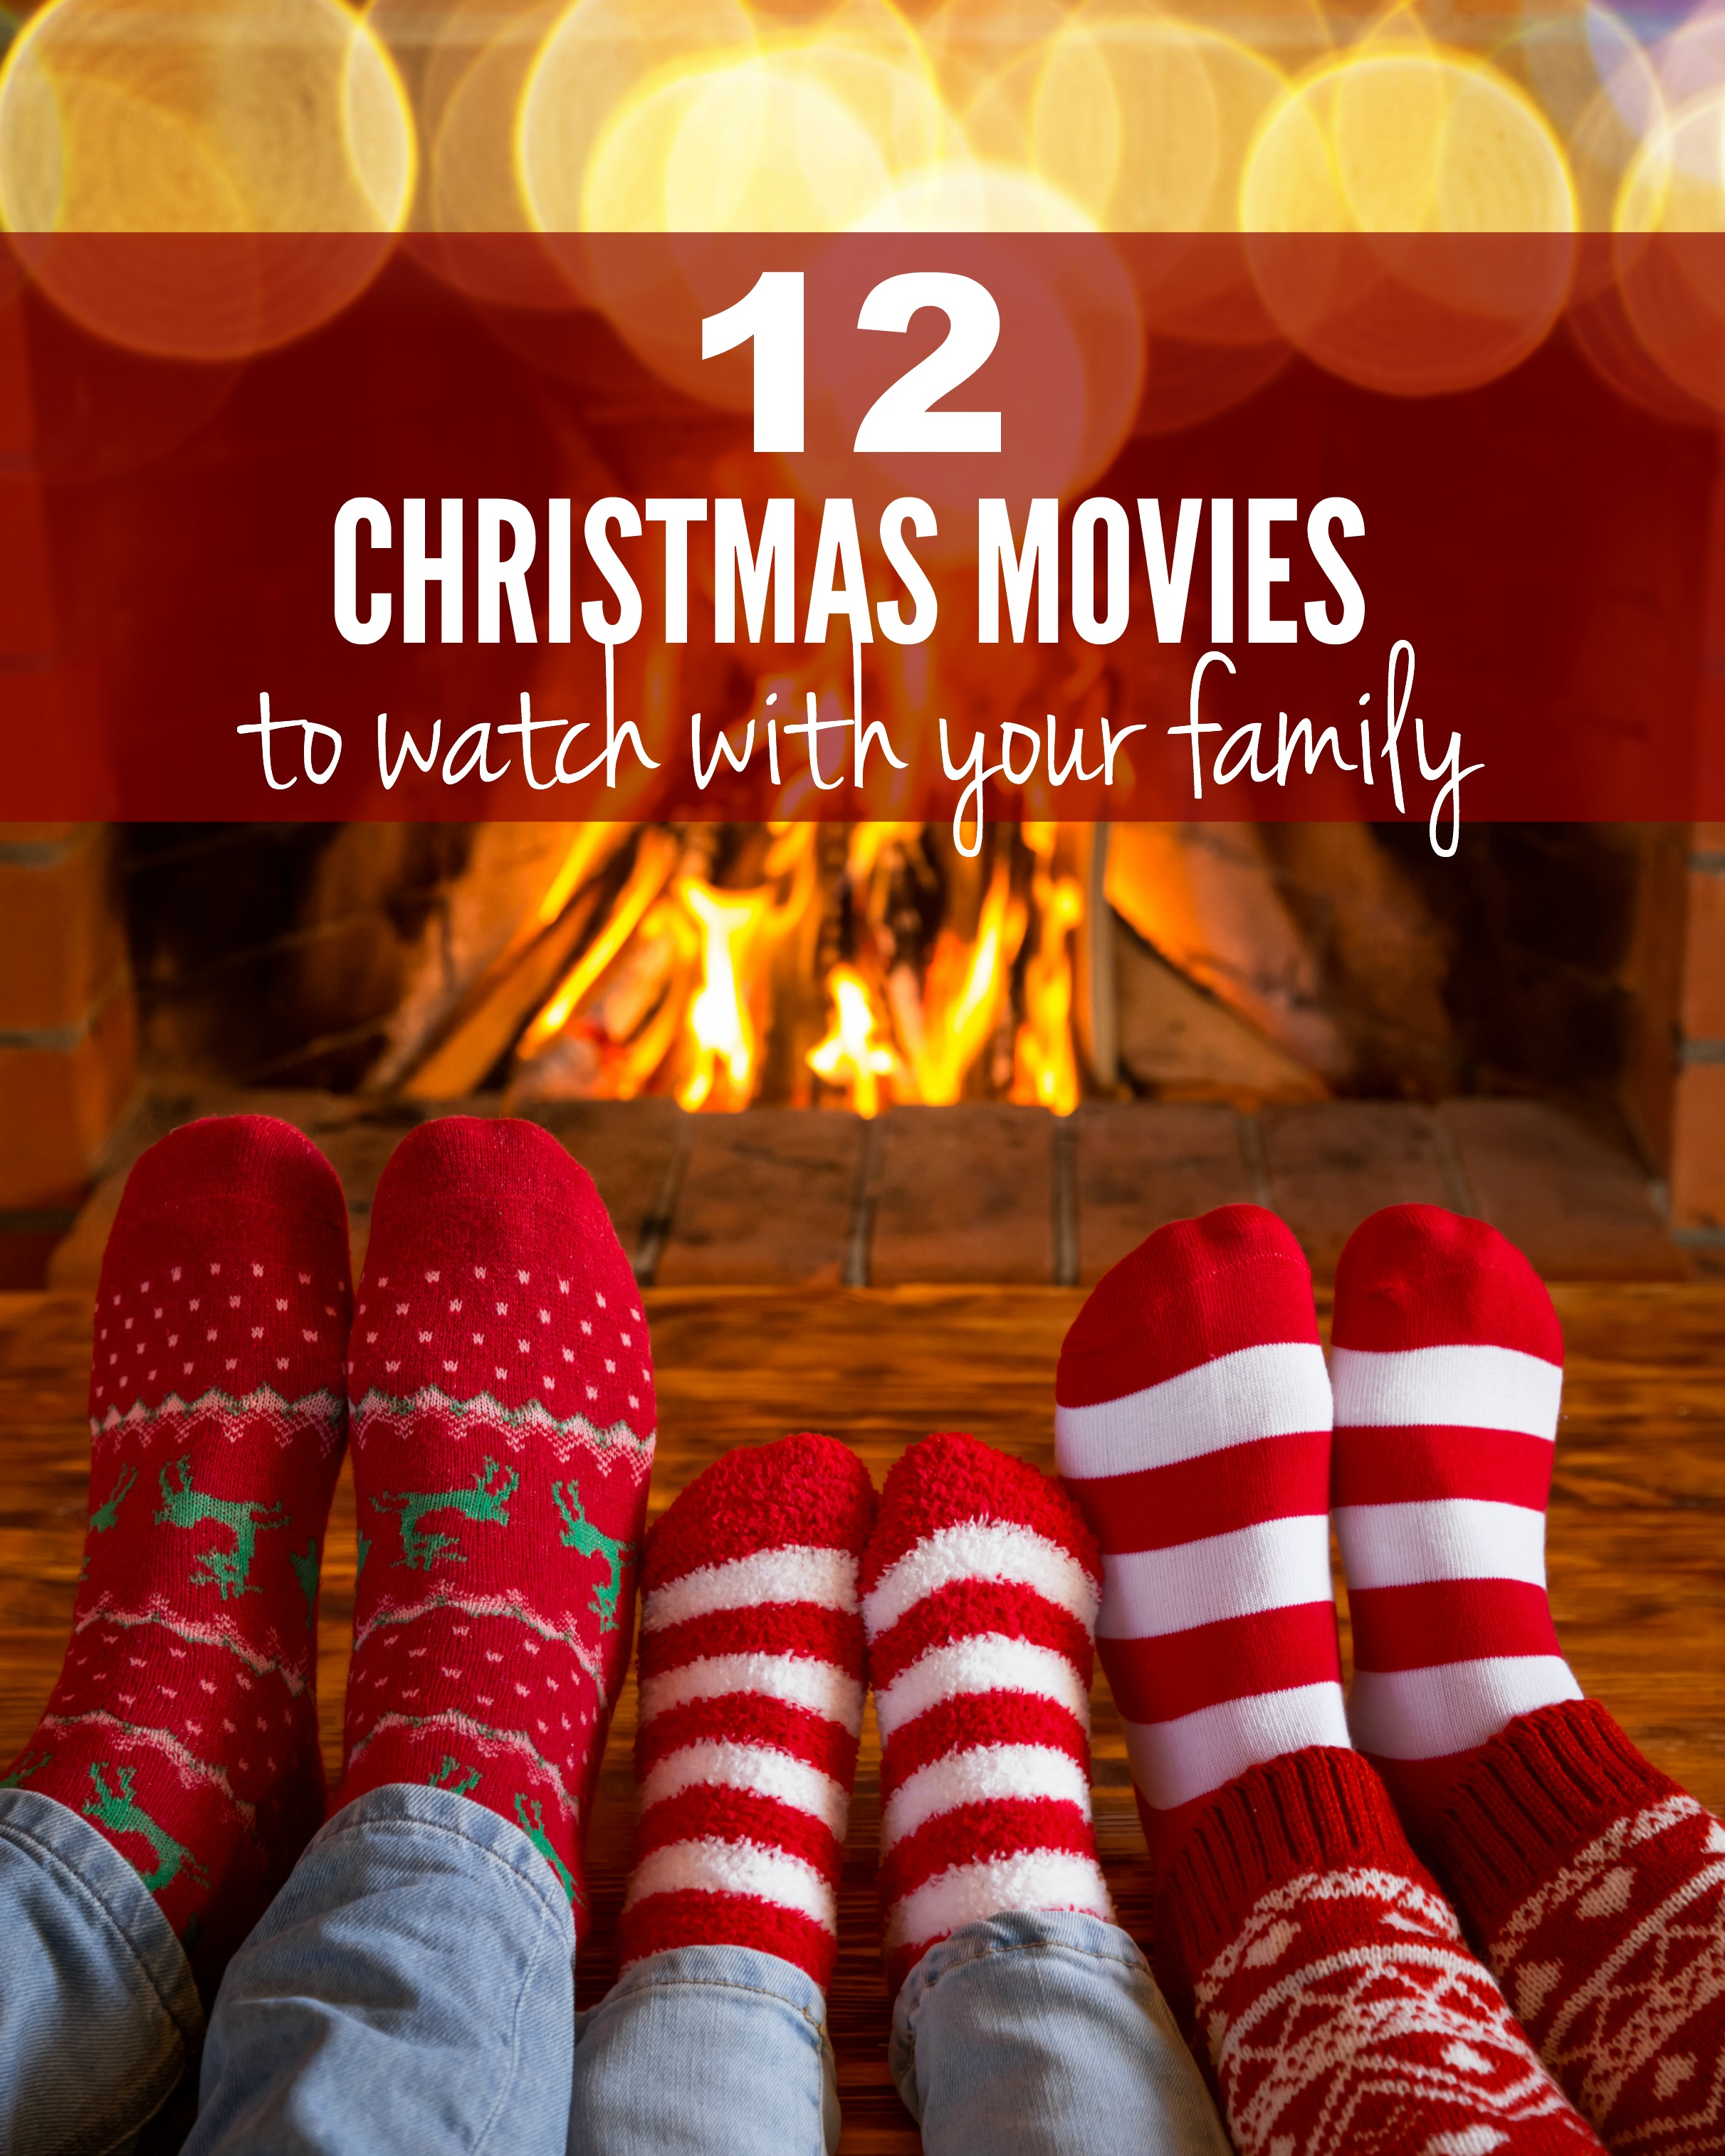 12 Christmas Movies to Watch with your Family | Tone and Tighten